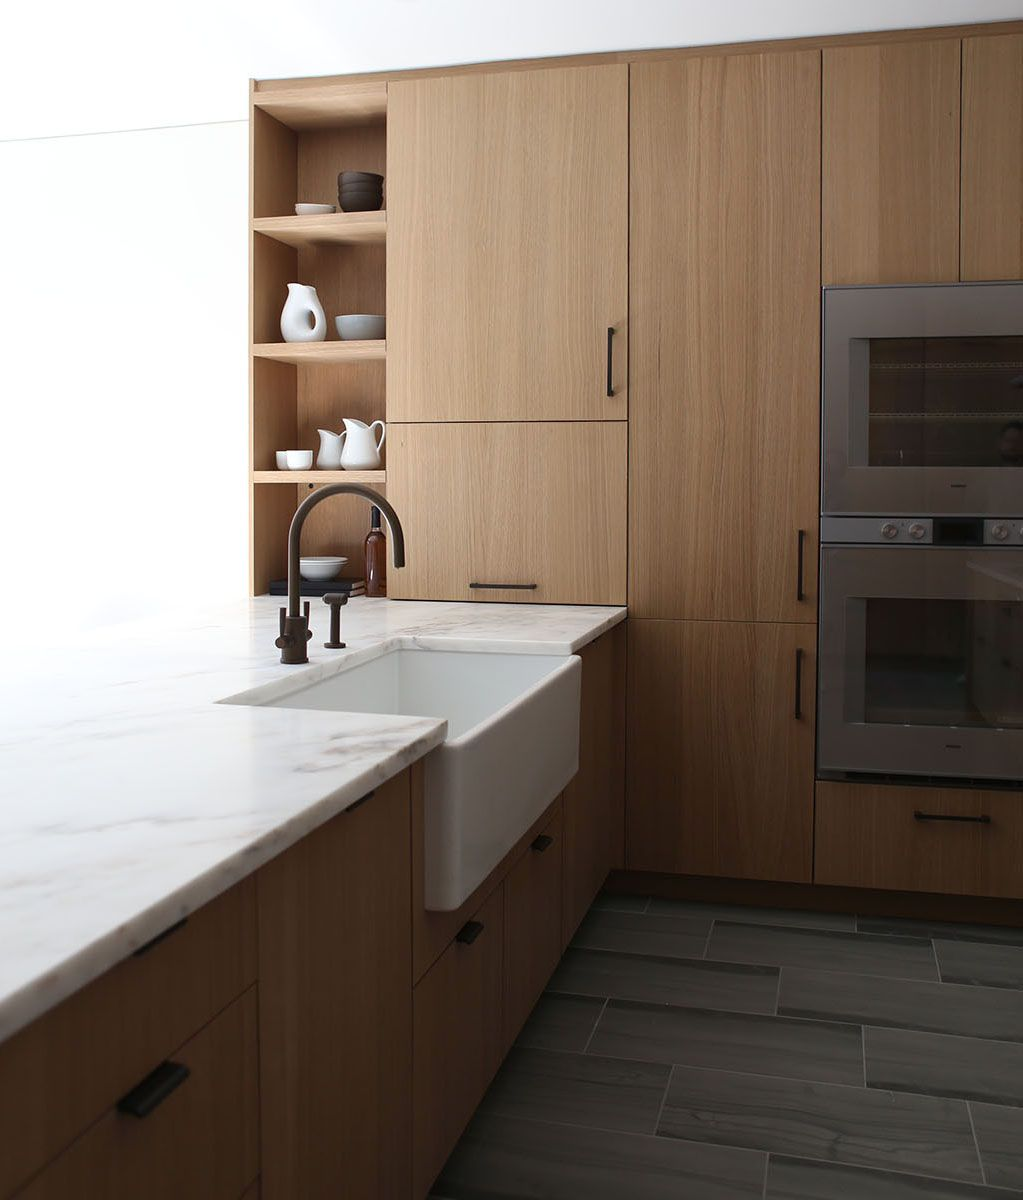 Kitchen Craft Cabinets Quality: Henry Built Kitchen - Google Search